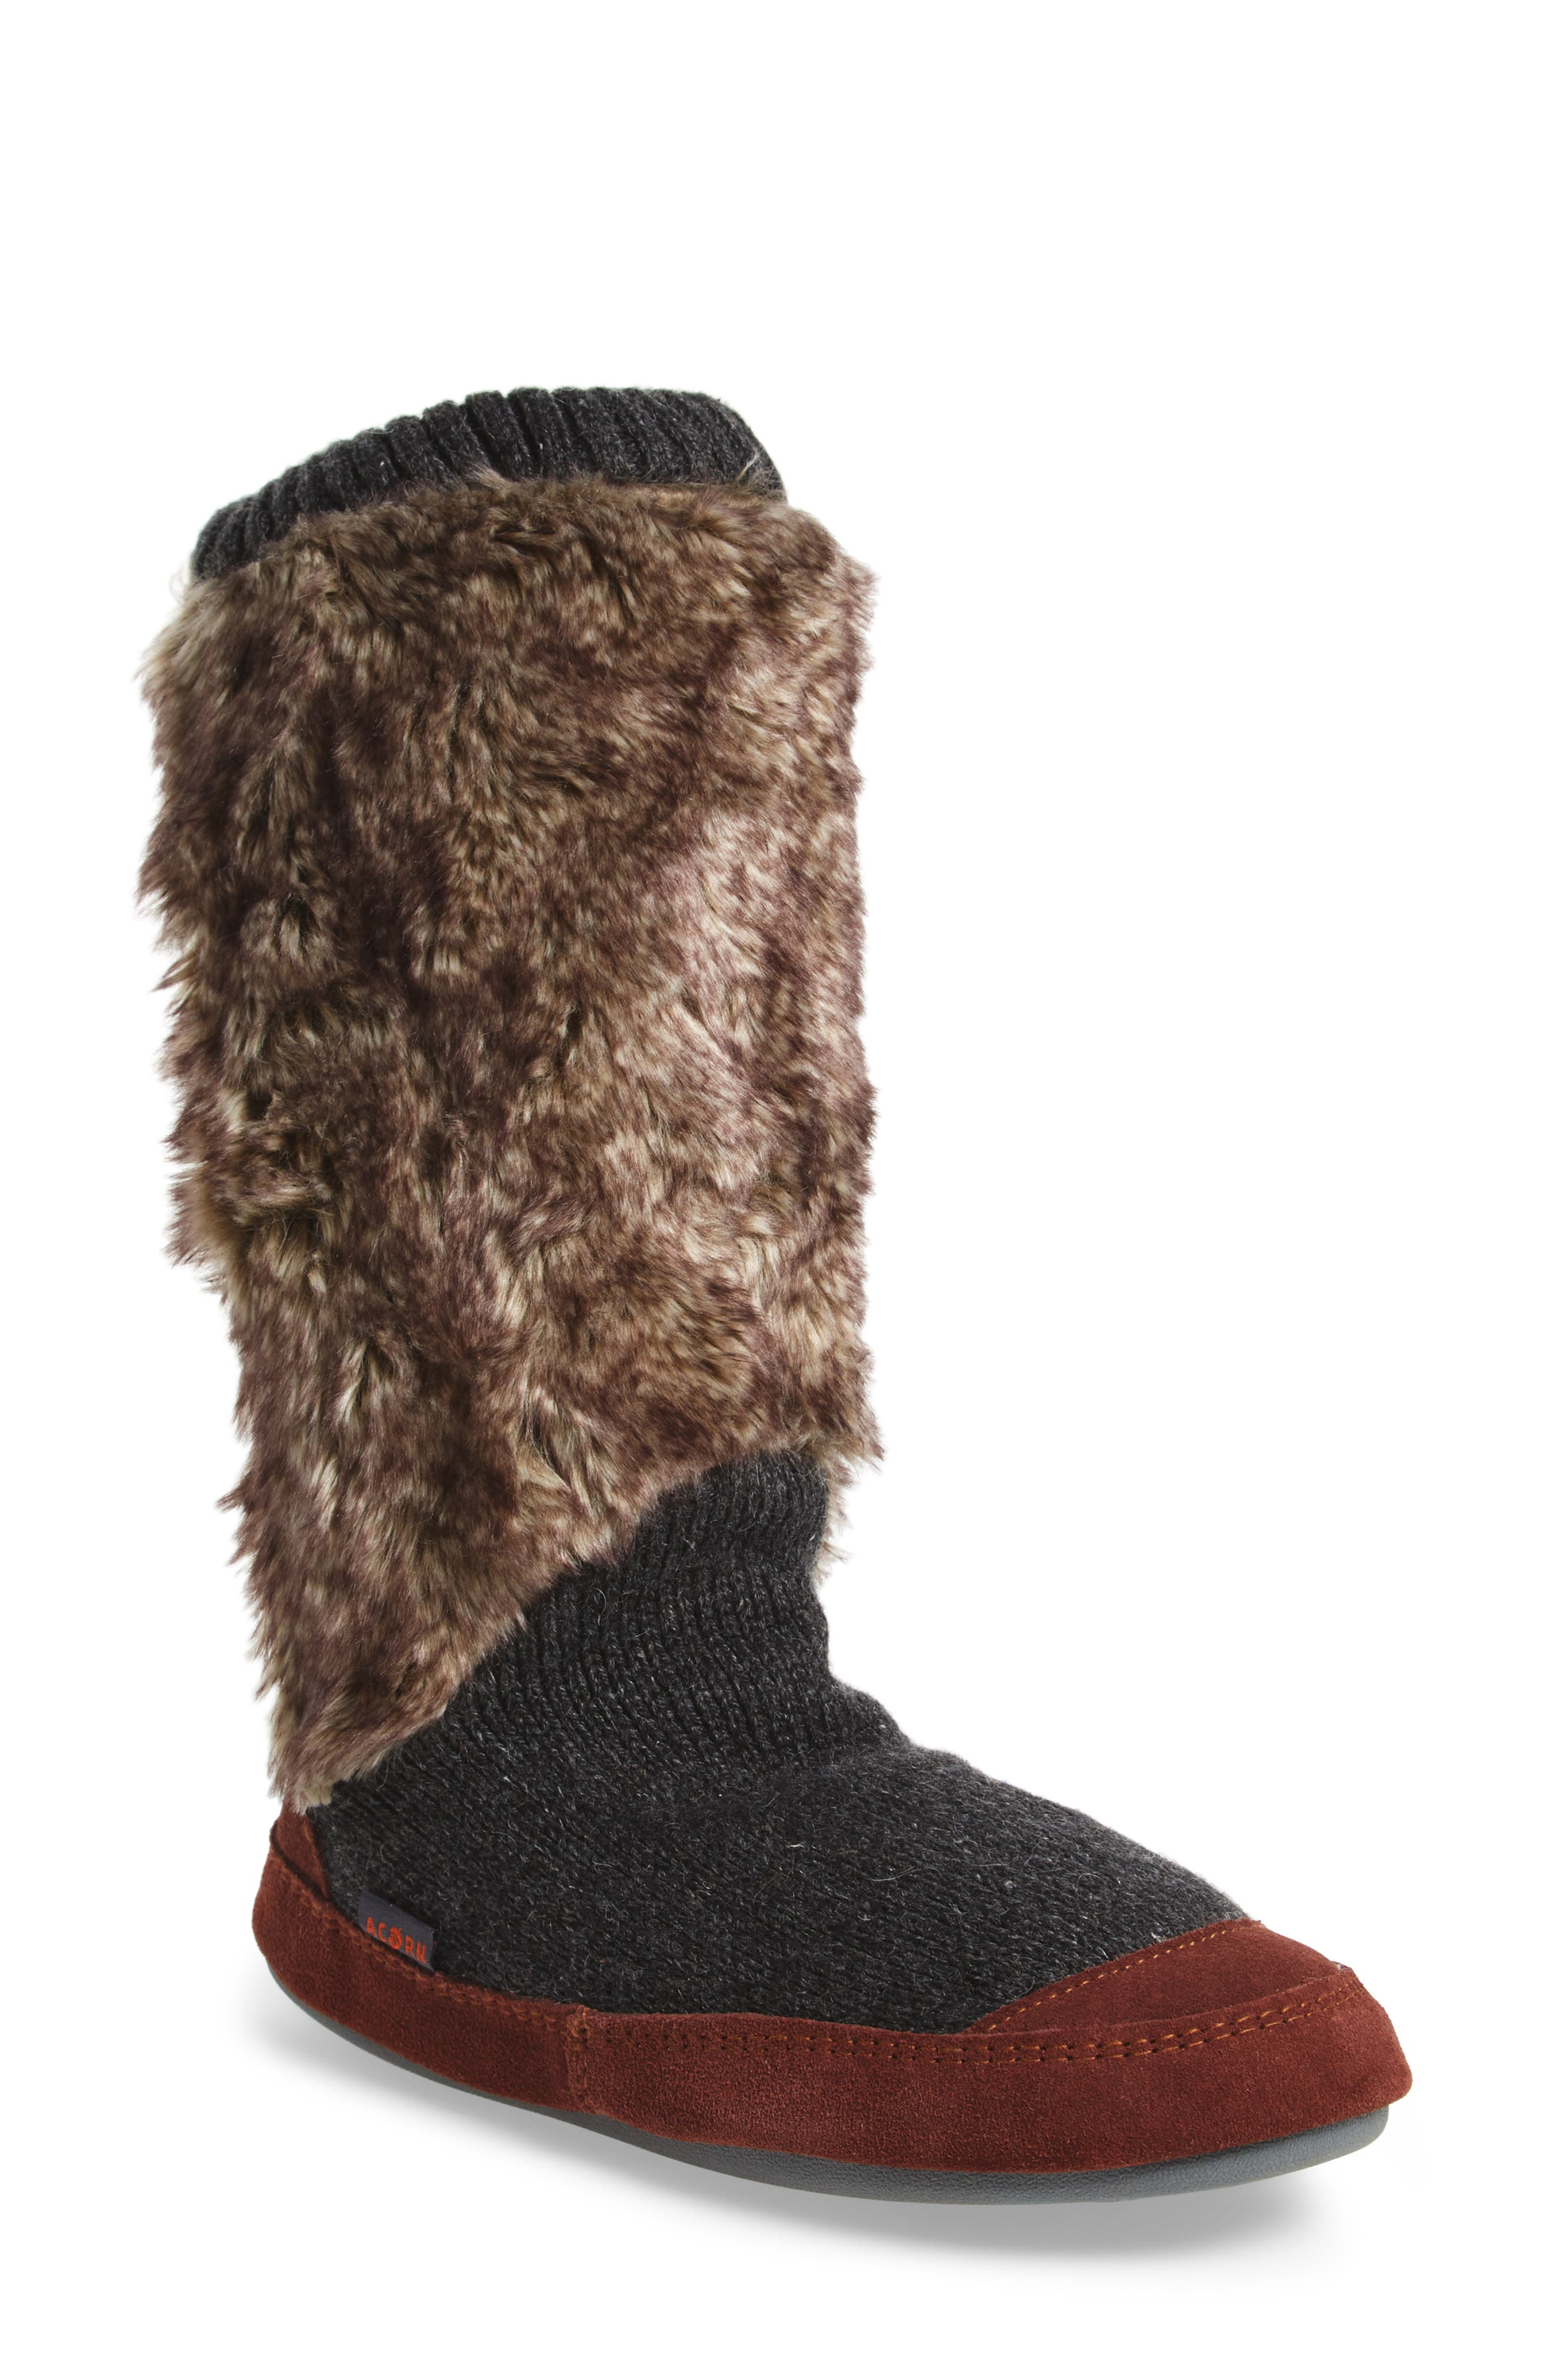 ACORN Slouch Slipper Boot in Charcoal Faux Fur